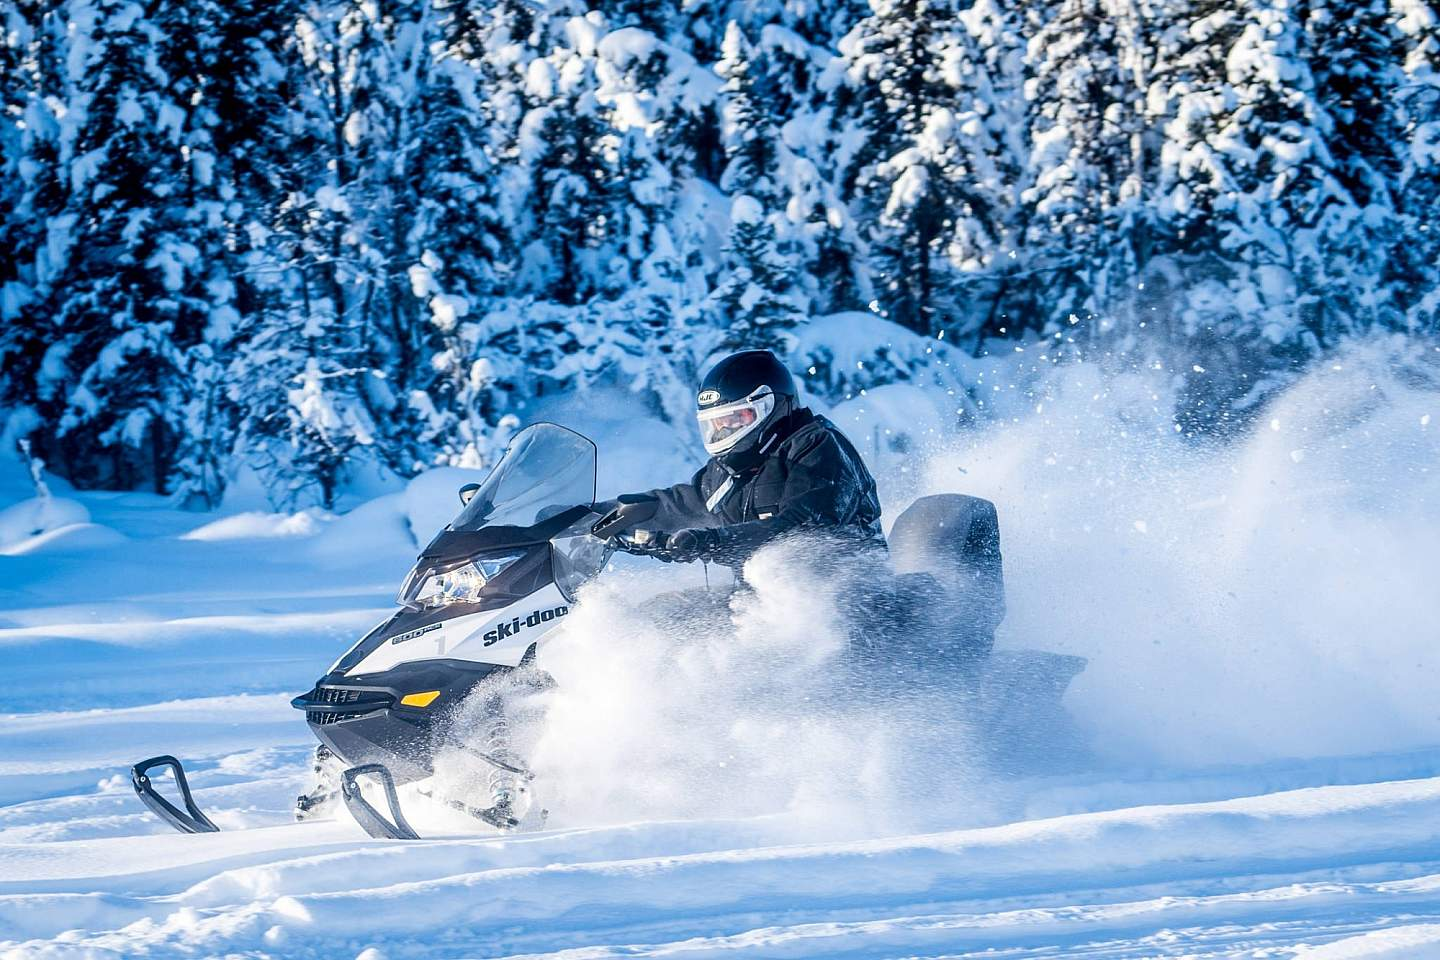 Someone on a snowmachining through the snow